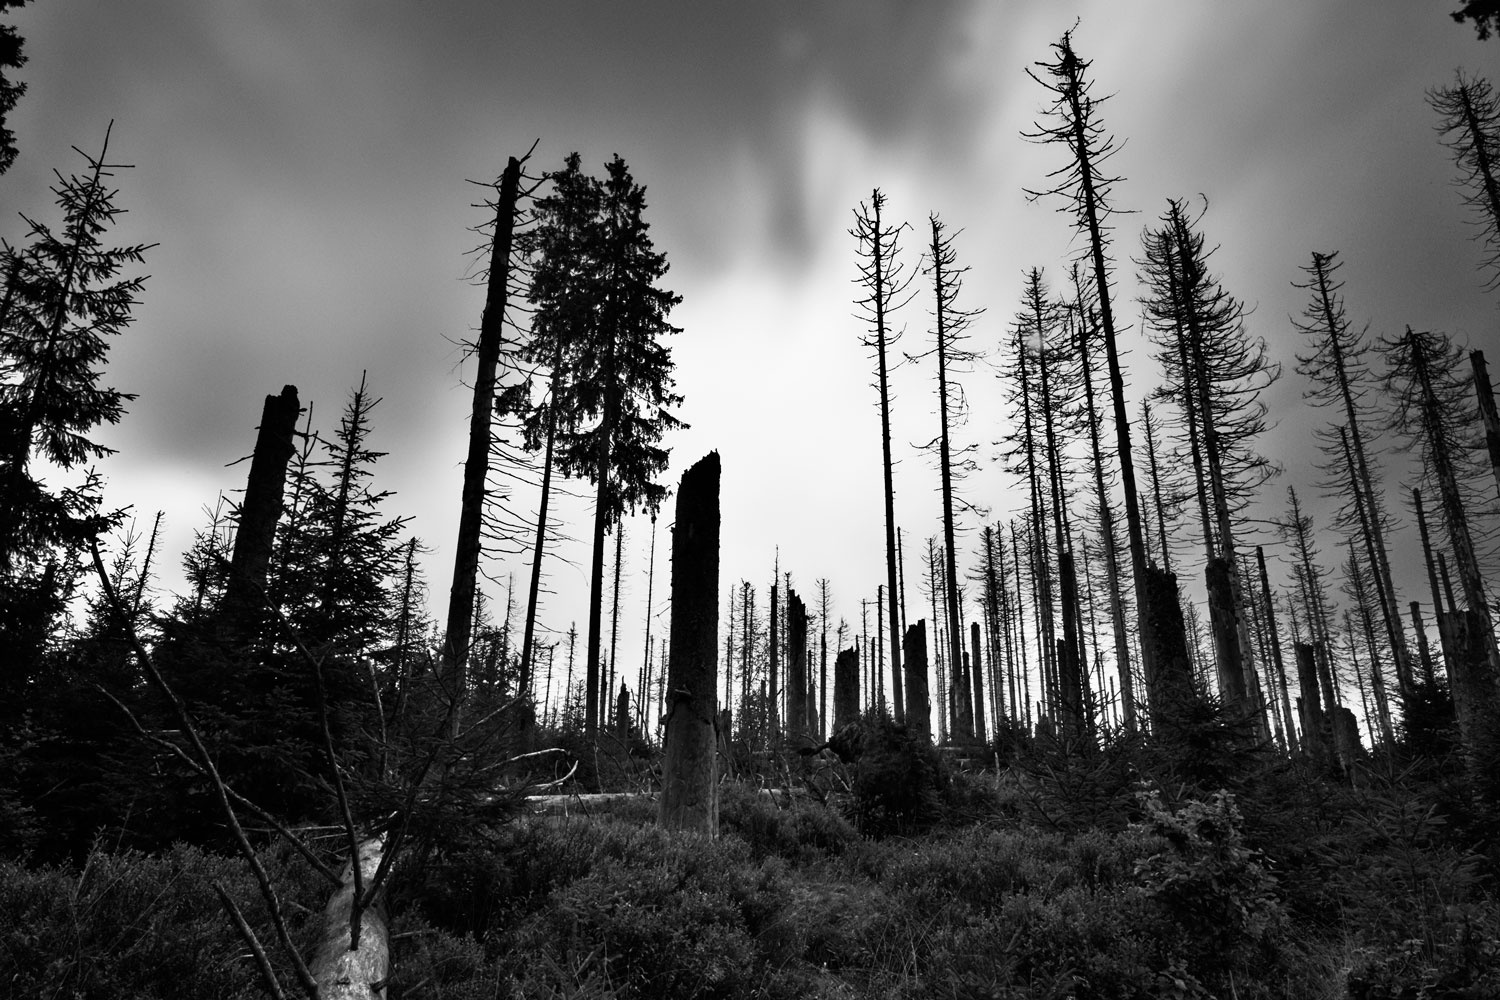 Dying forest by bark beetle disease in Harz by Jan Christian Zimara